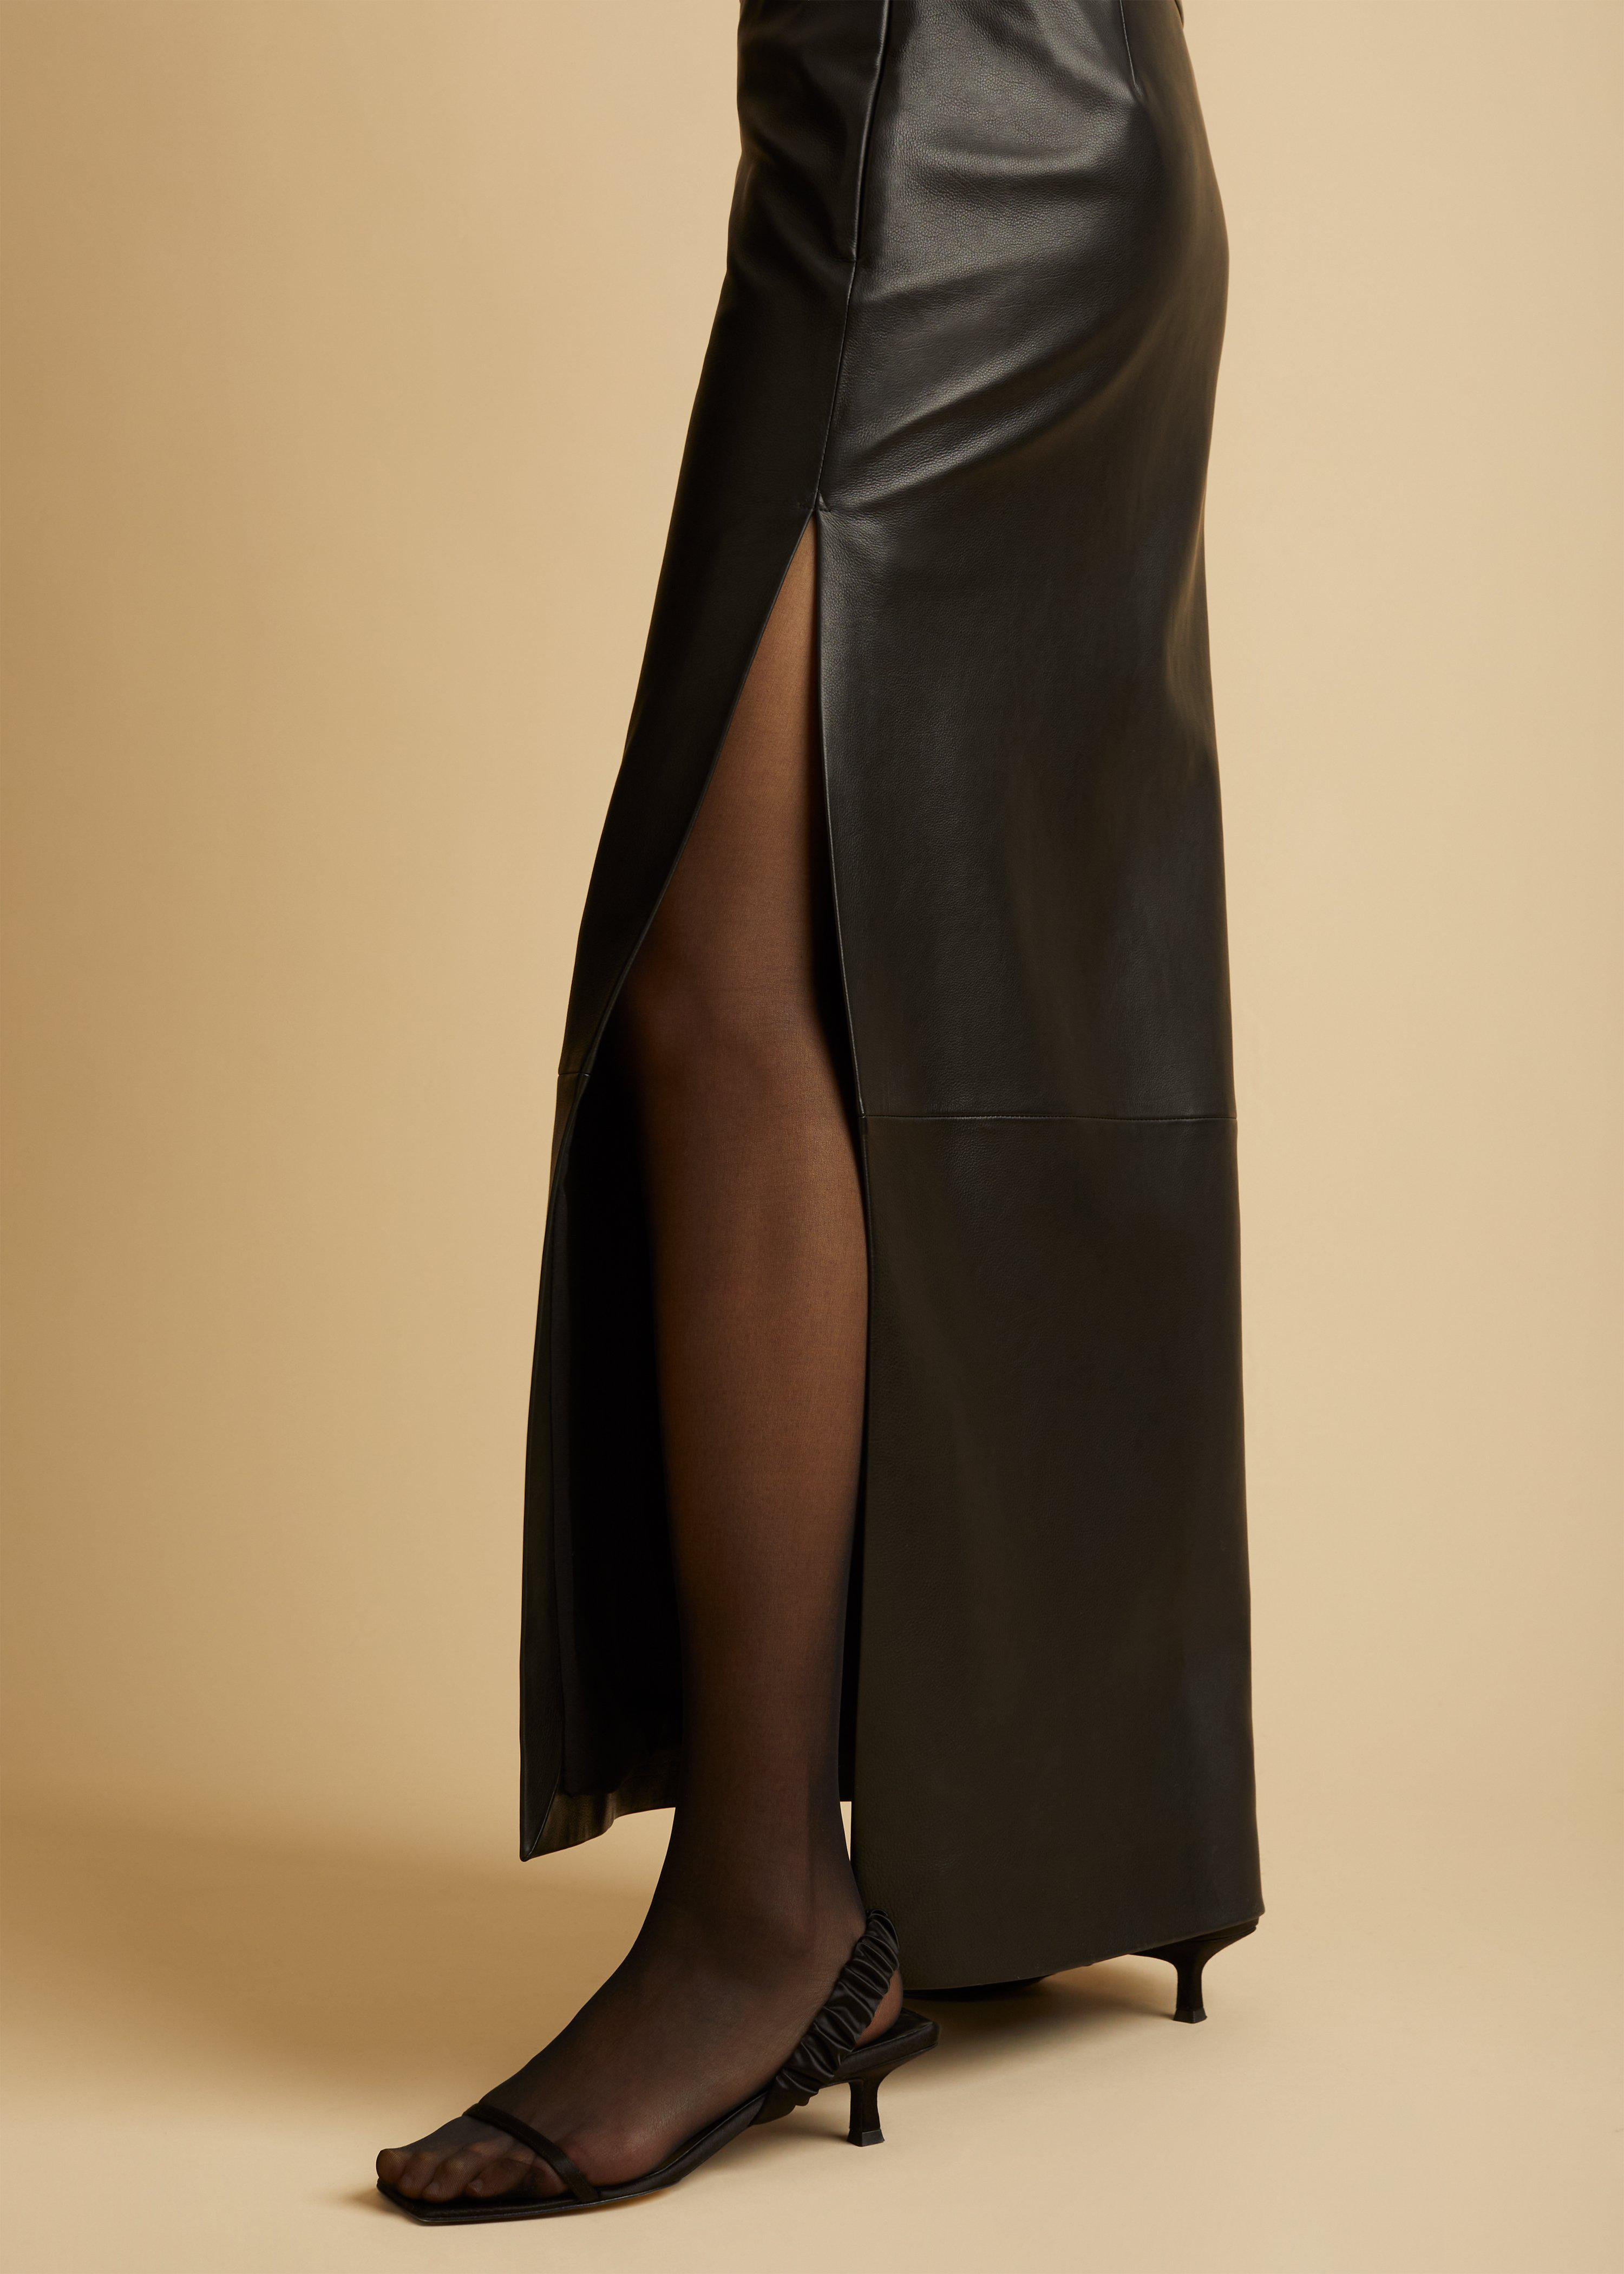 The Myla Skirt in Black Leather 3